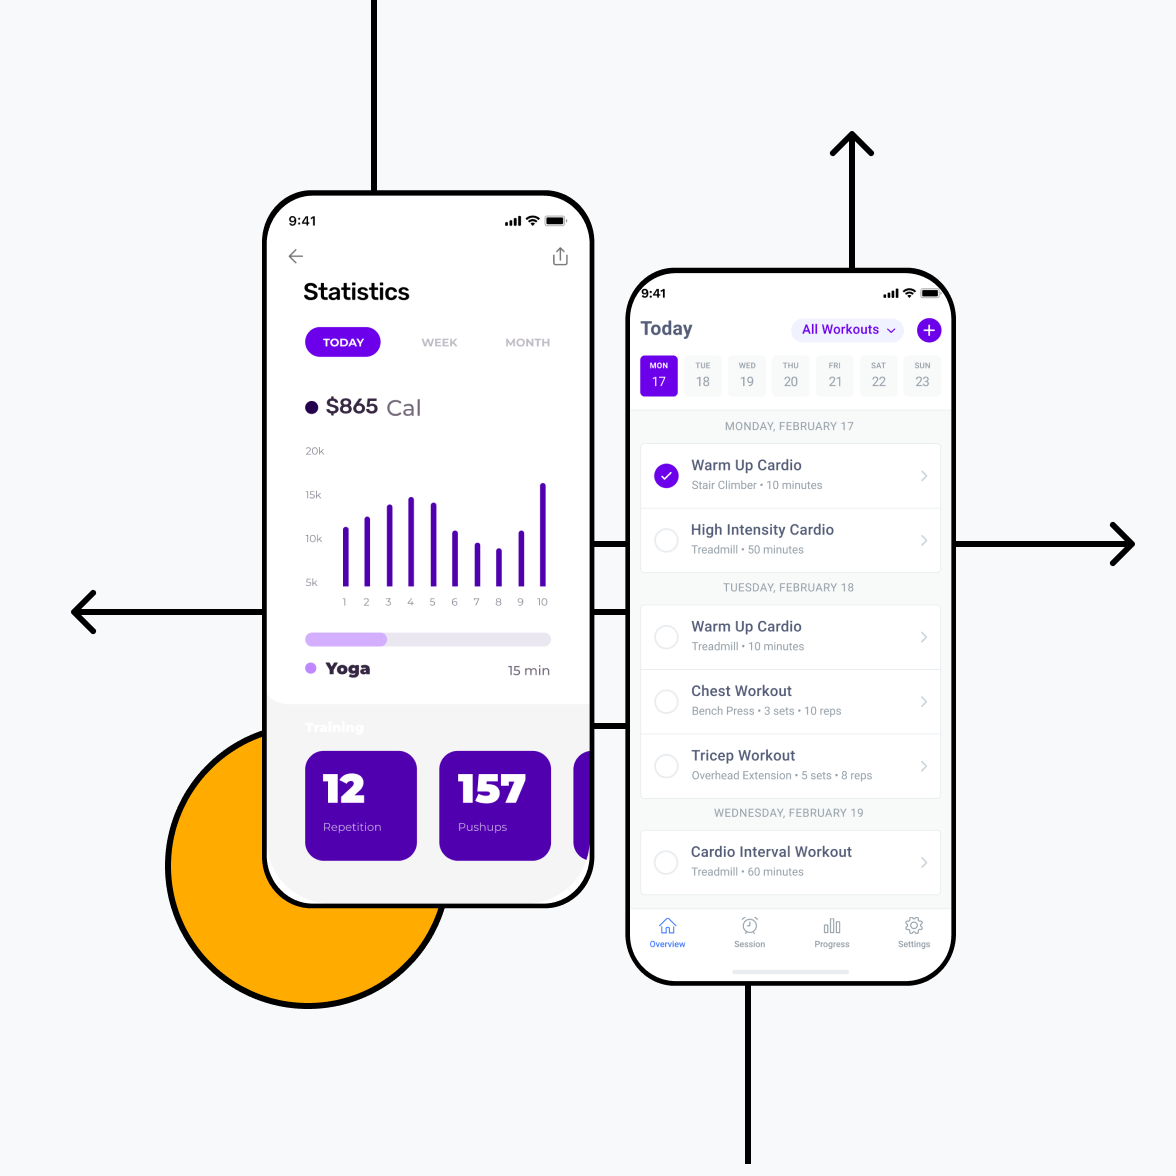 Fitness app screens with statistics and schedule